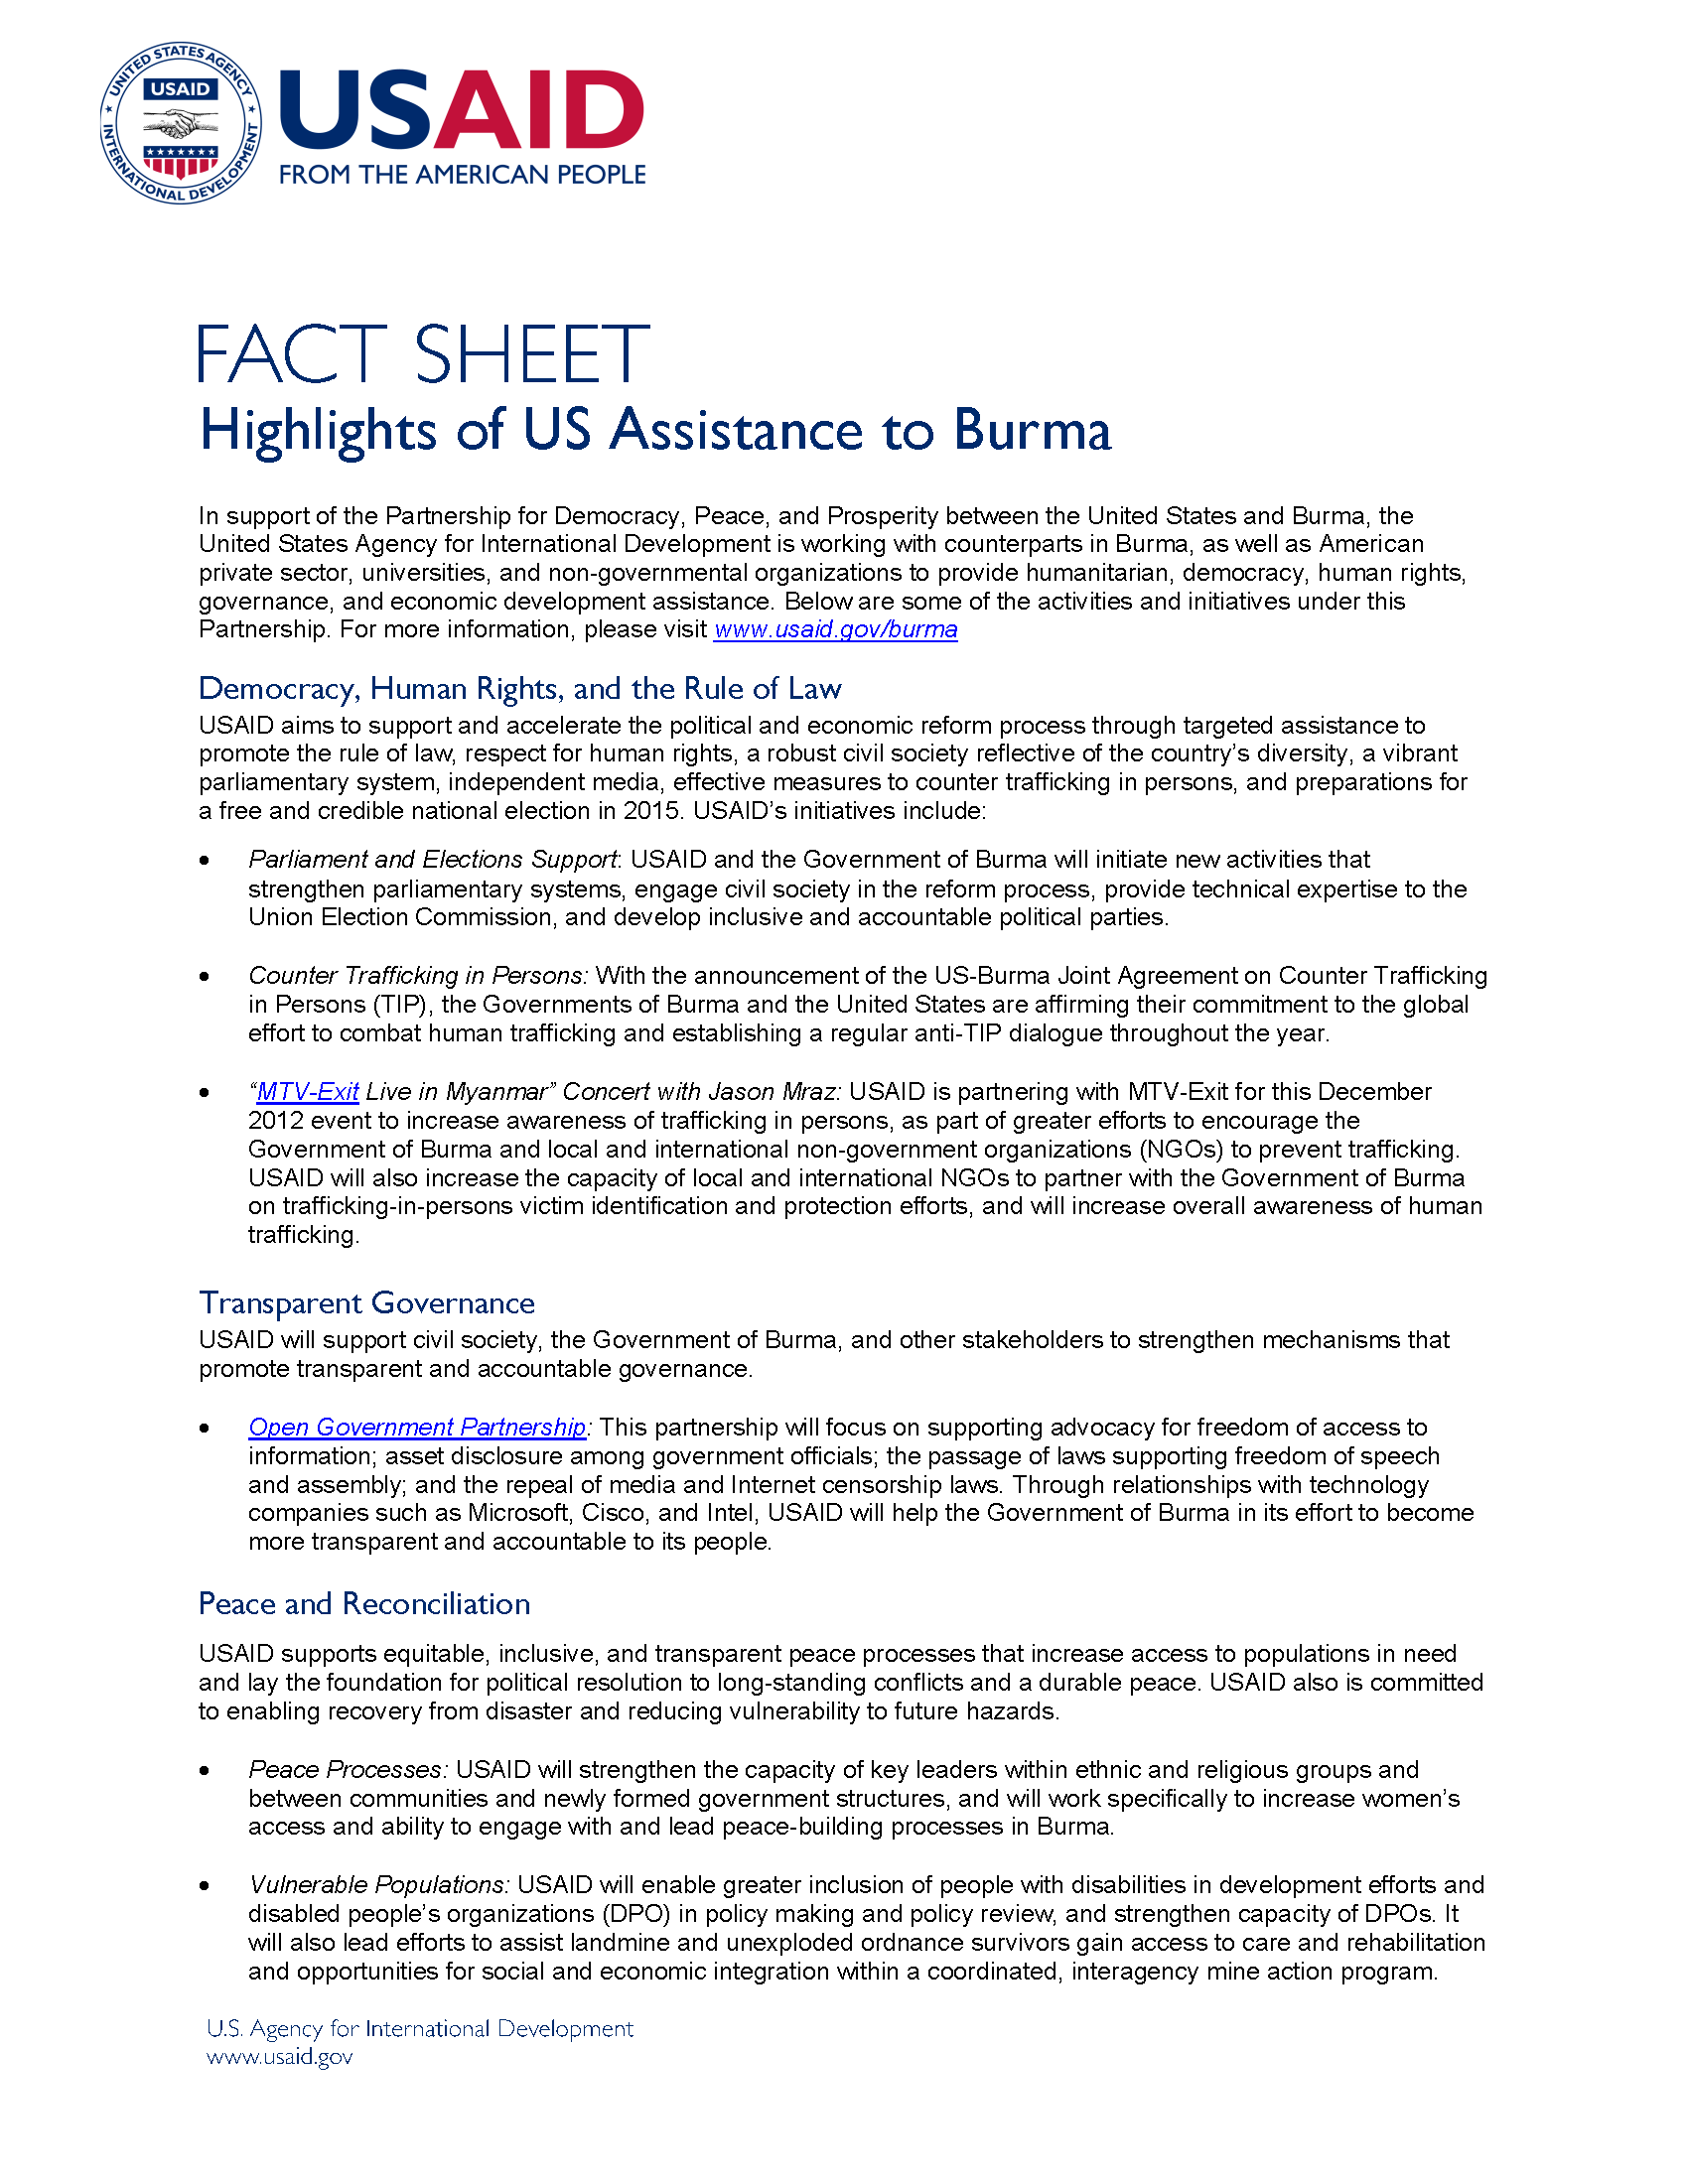 Highlights of USAID Assistance to Burma Fact Sheet